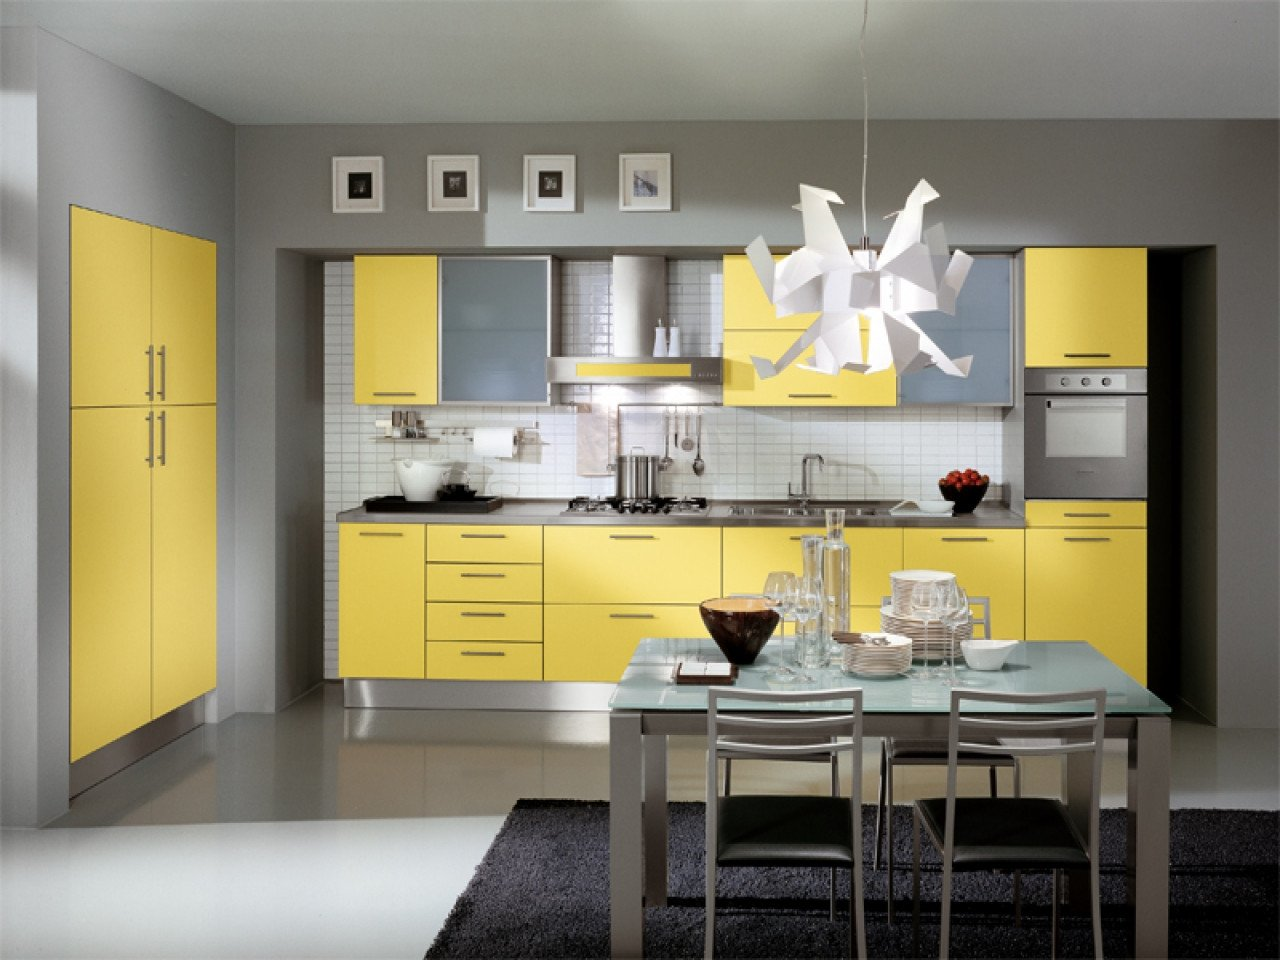 Yellow and Gray Kitchen Decor Luxury Kitchen Decorating Ideas with Red Accents Grey and Yellow Kitchen Ideas Gray Kitchen Cabinets